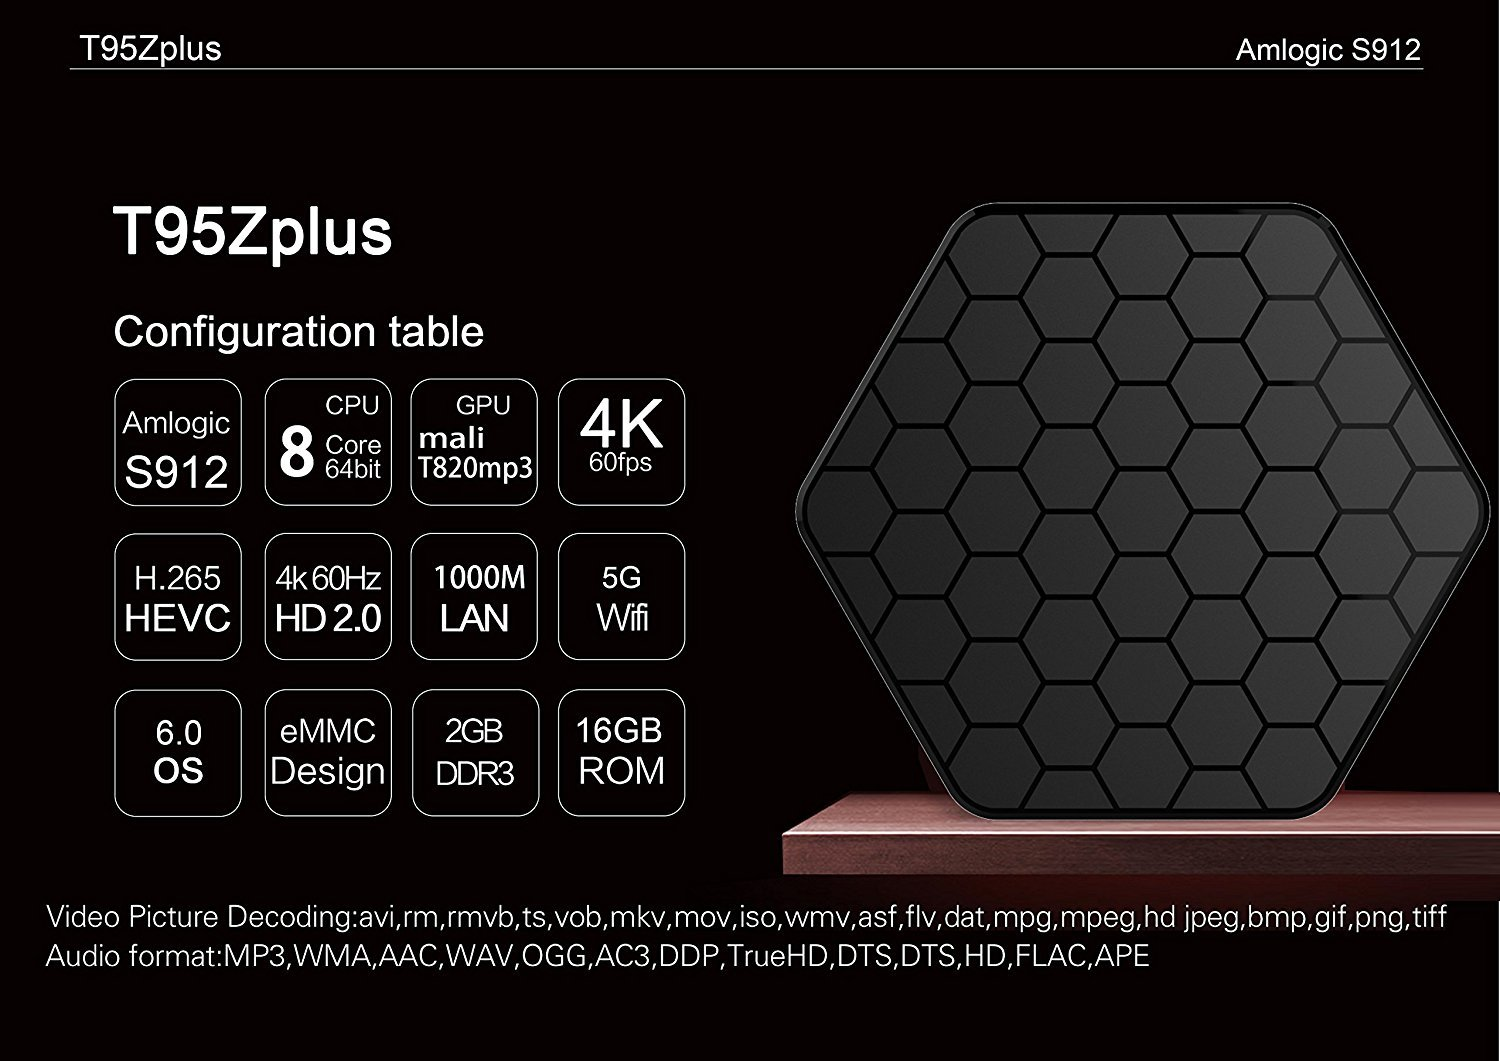 Amazon.com: Android TV Box, Android 7.1 T95Z Plus TV Box with Amlogic S912 Octa-core 2GB DDR3 16GB Emmc Flash Support 2.4G/5G Dual WiFi Bluetooth HDMI HD 4K ...